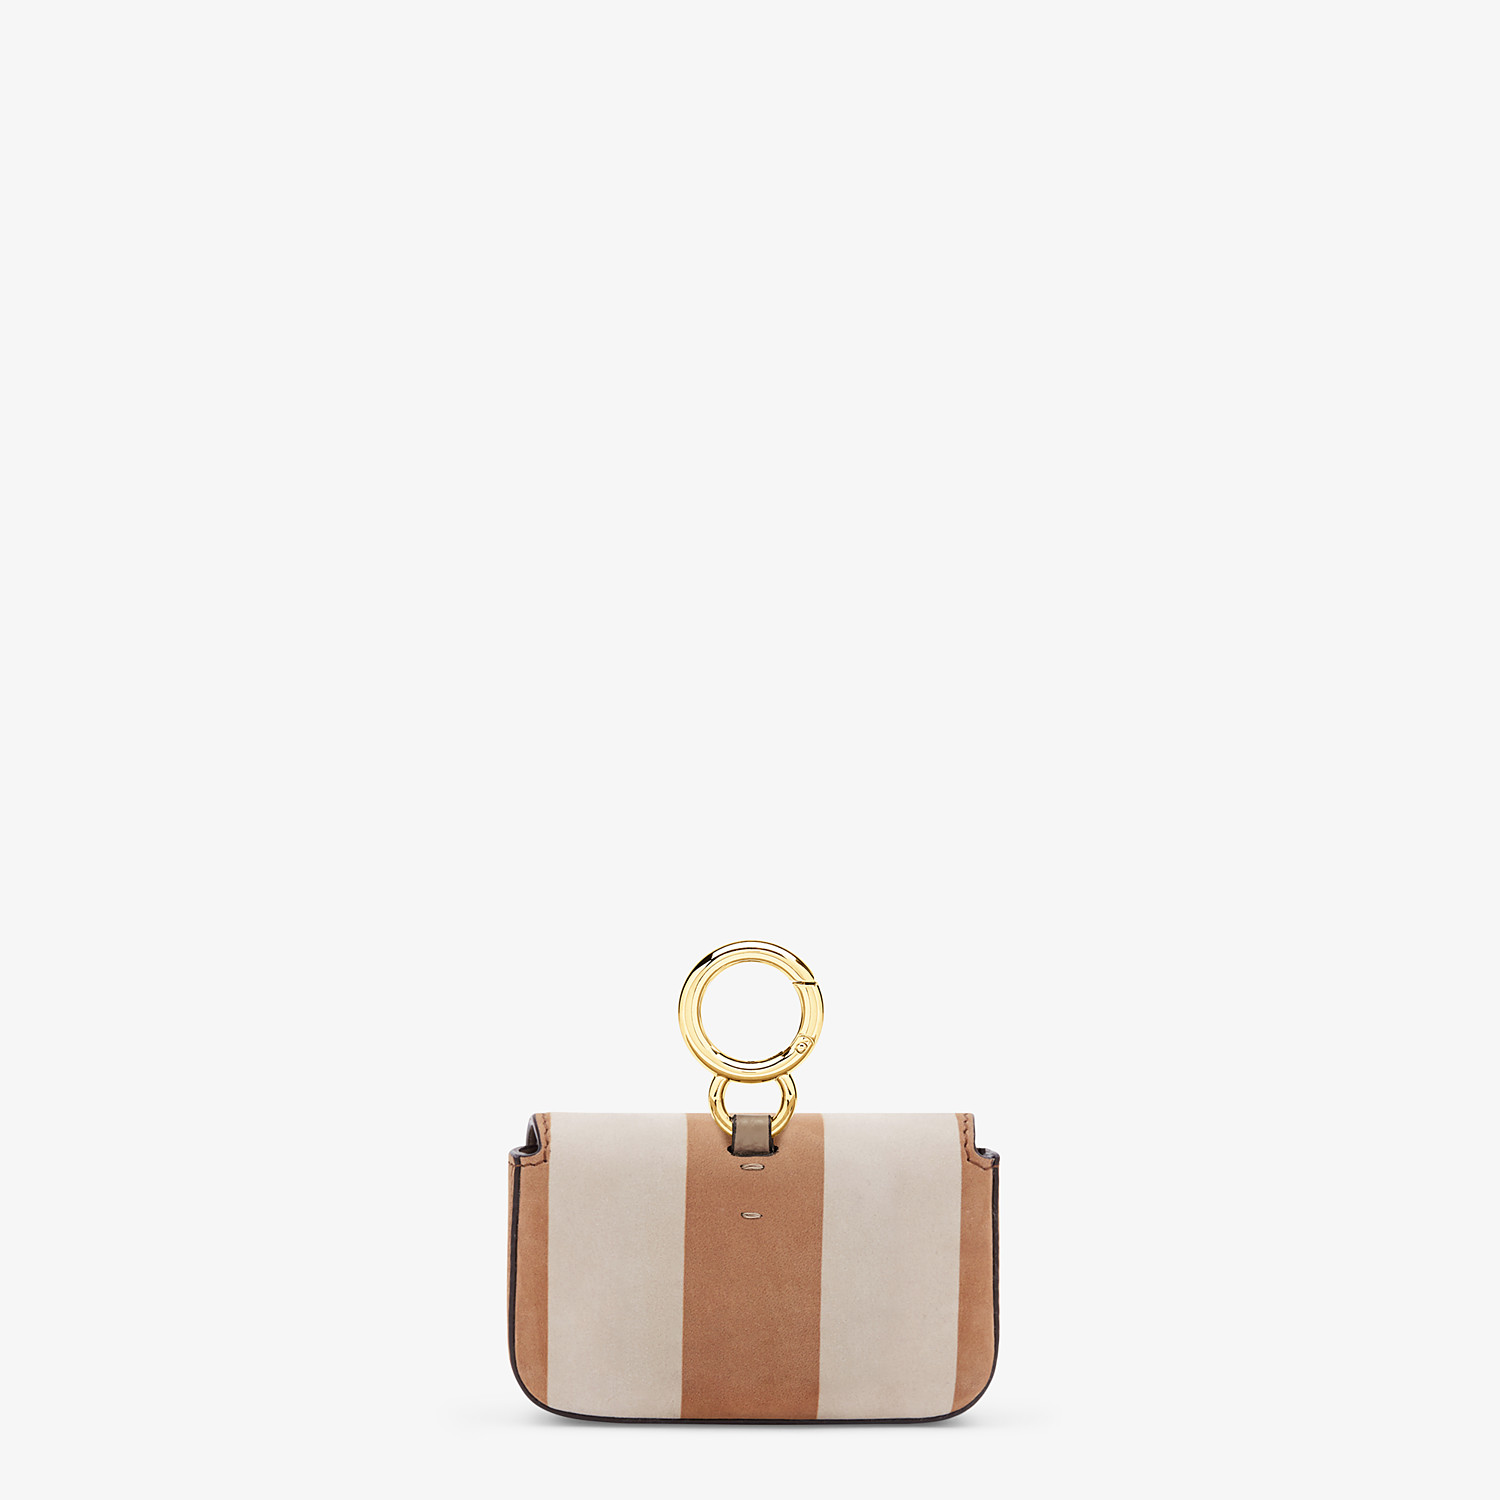 FENDI NANO BAGUETTE - Beige nubuck leather charm - view 4 detail